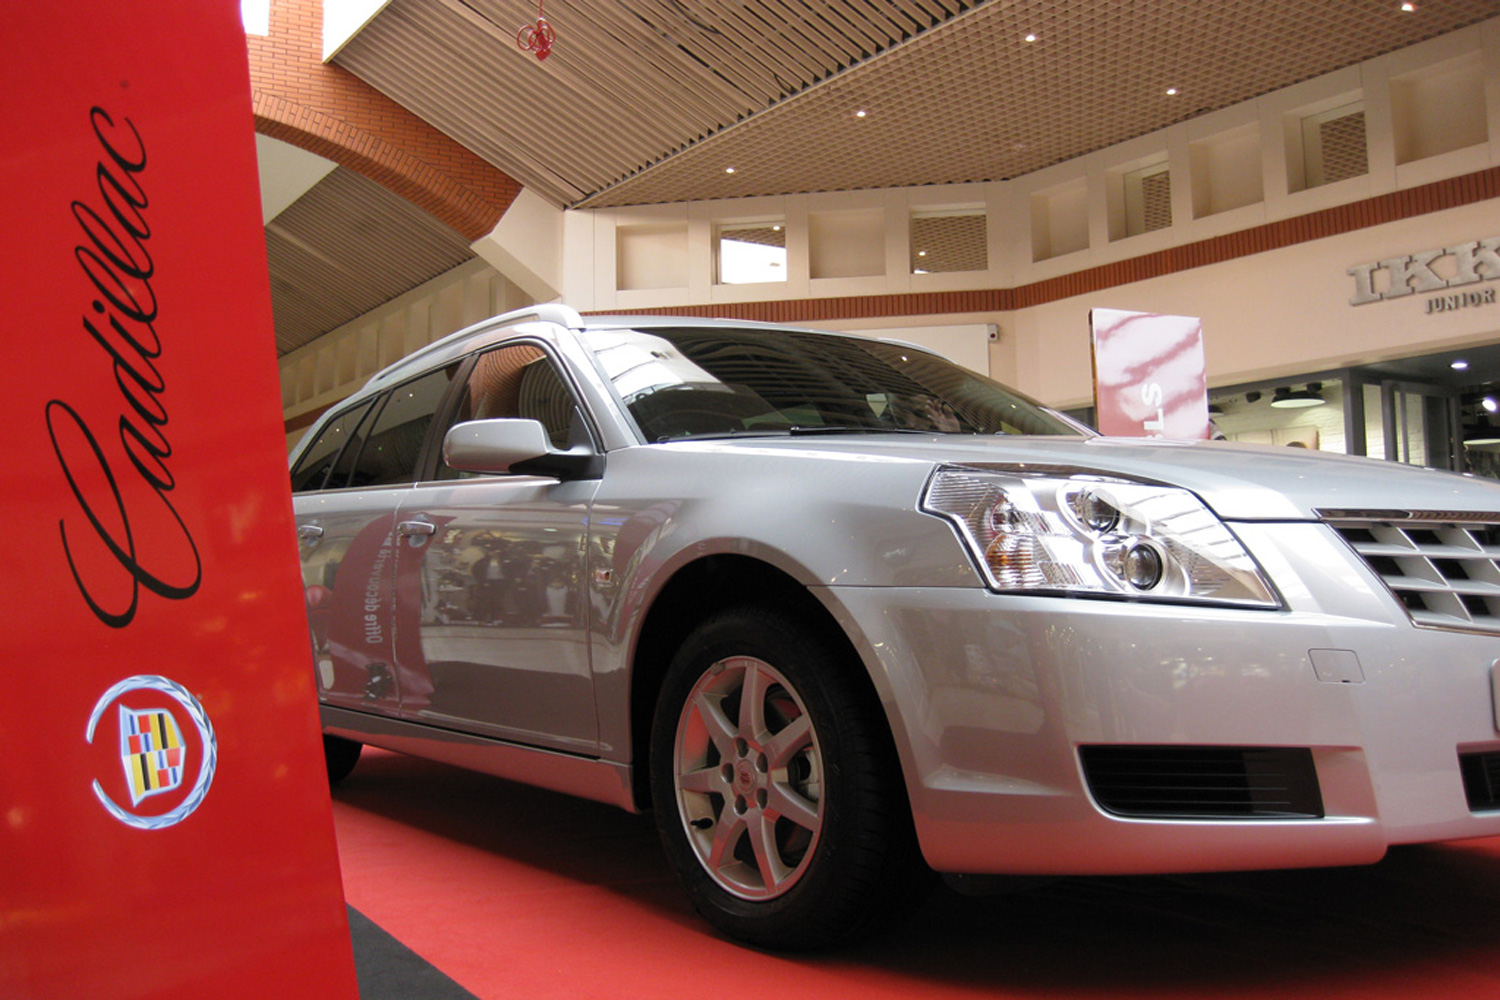 CadillacProject2008>stage2.jpg